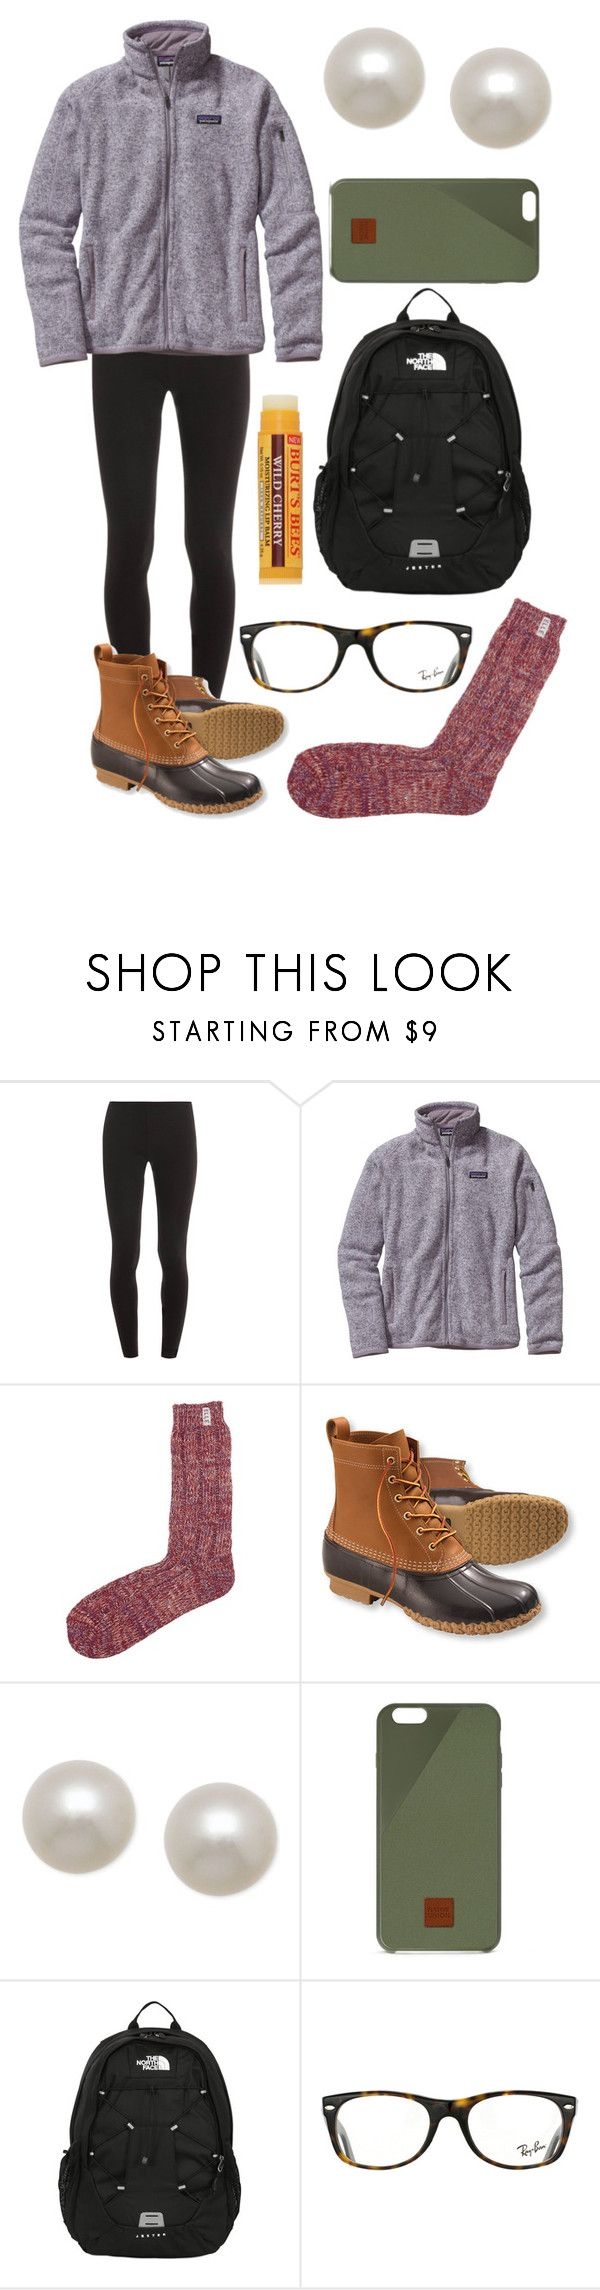 """CCD today"" by emmacaseyyyy ❤ liked on Polyvore featuring Splendid, Patagonia, Elle, L.L.Bean, Honora, Native Union, The North Face, Ray-Ban and Burt's Bees"